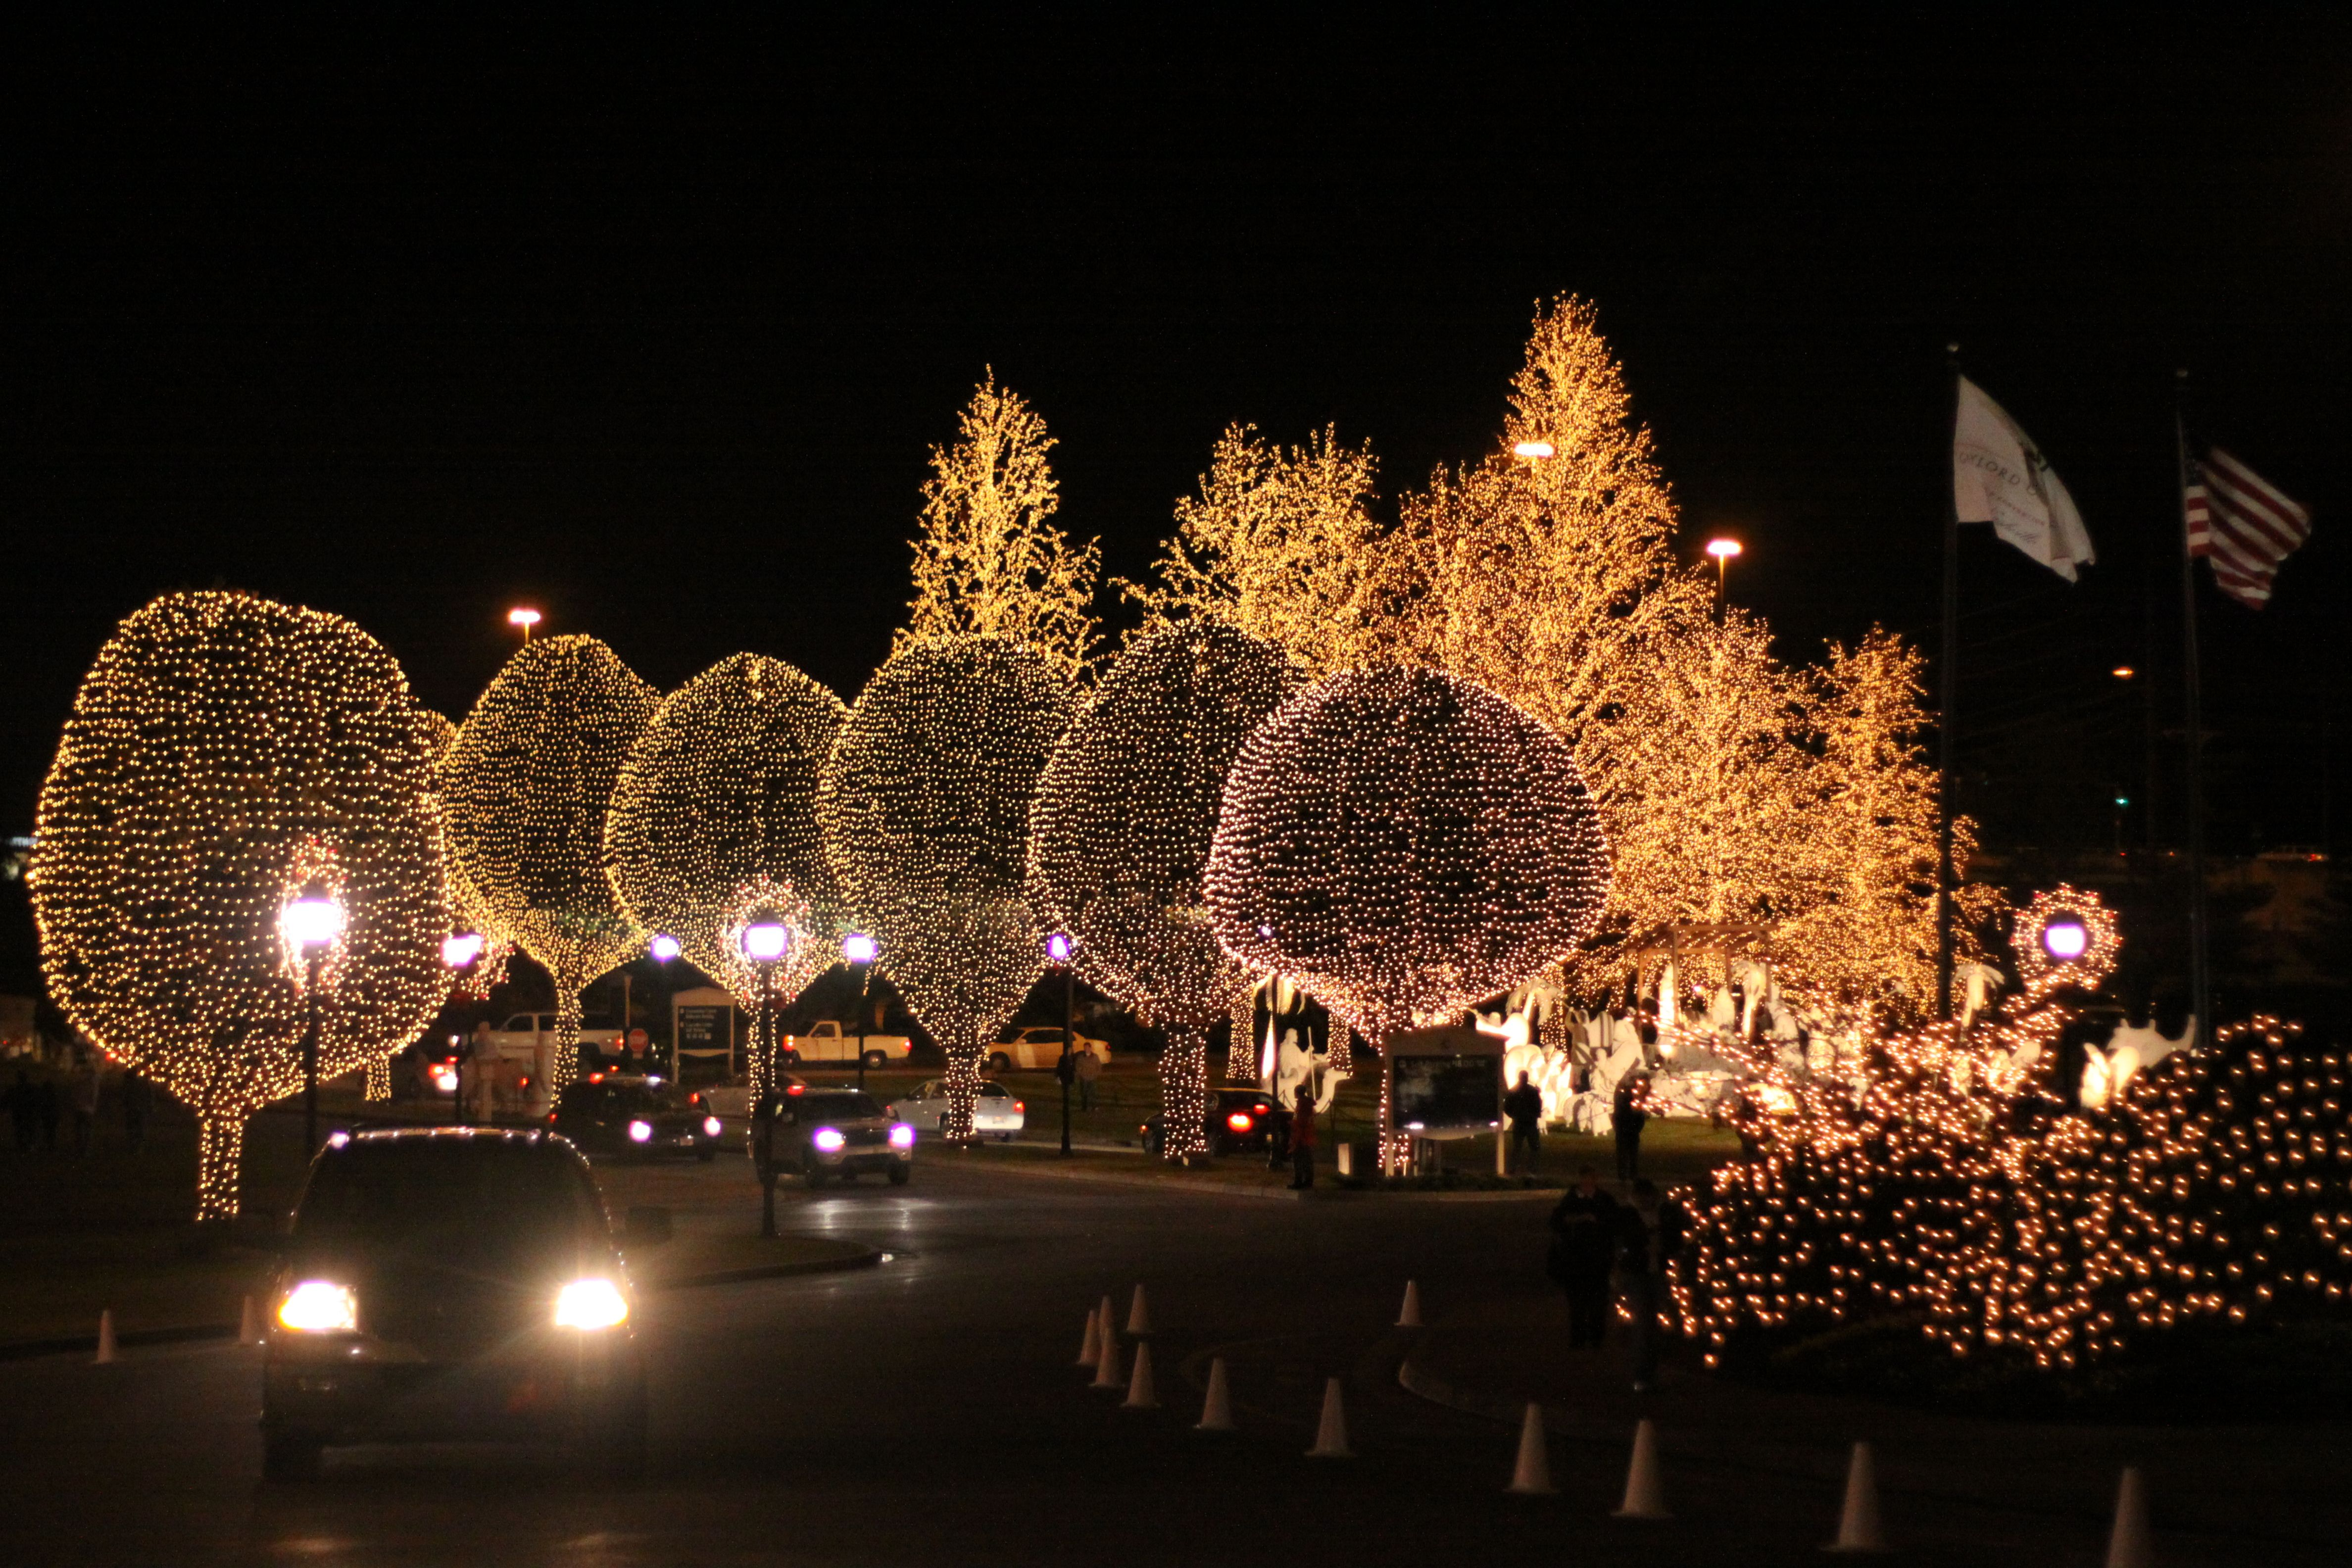 It's holiday lights season – time to relive the magic of your own childhood with your kids.